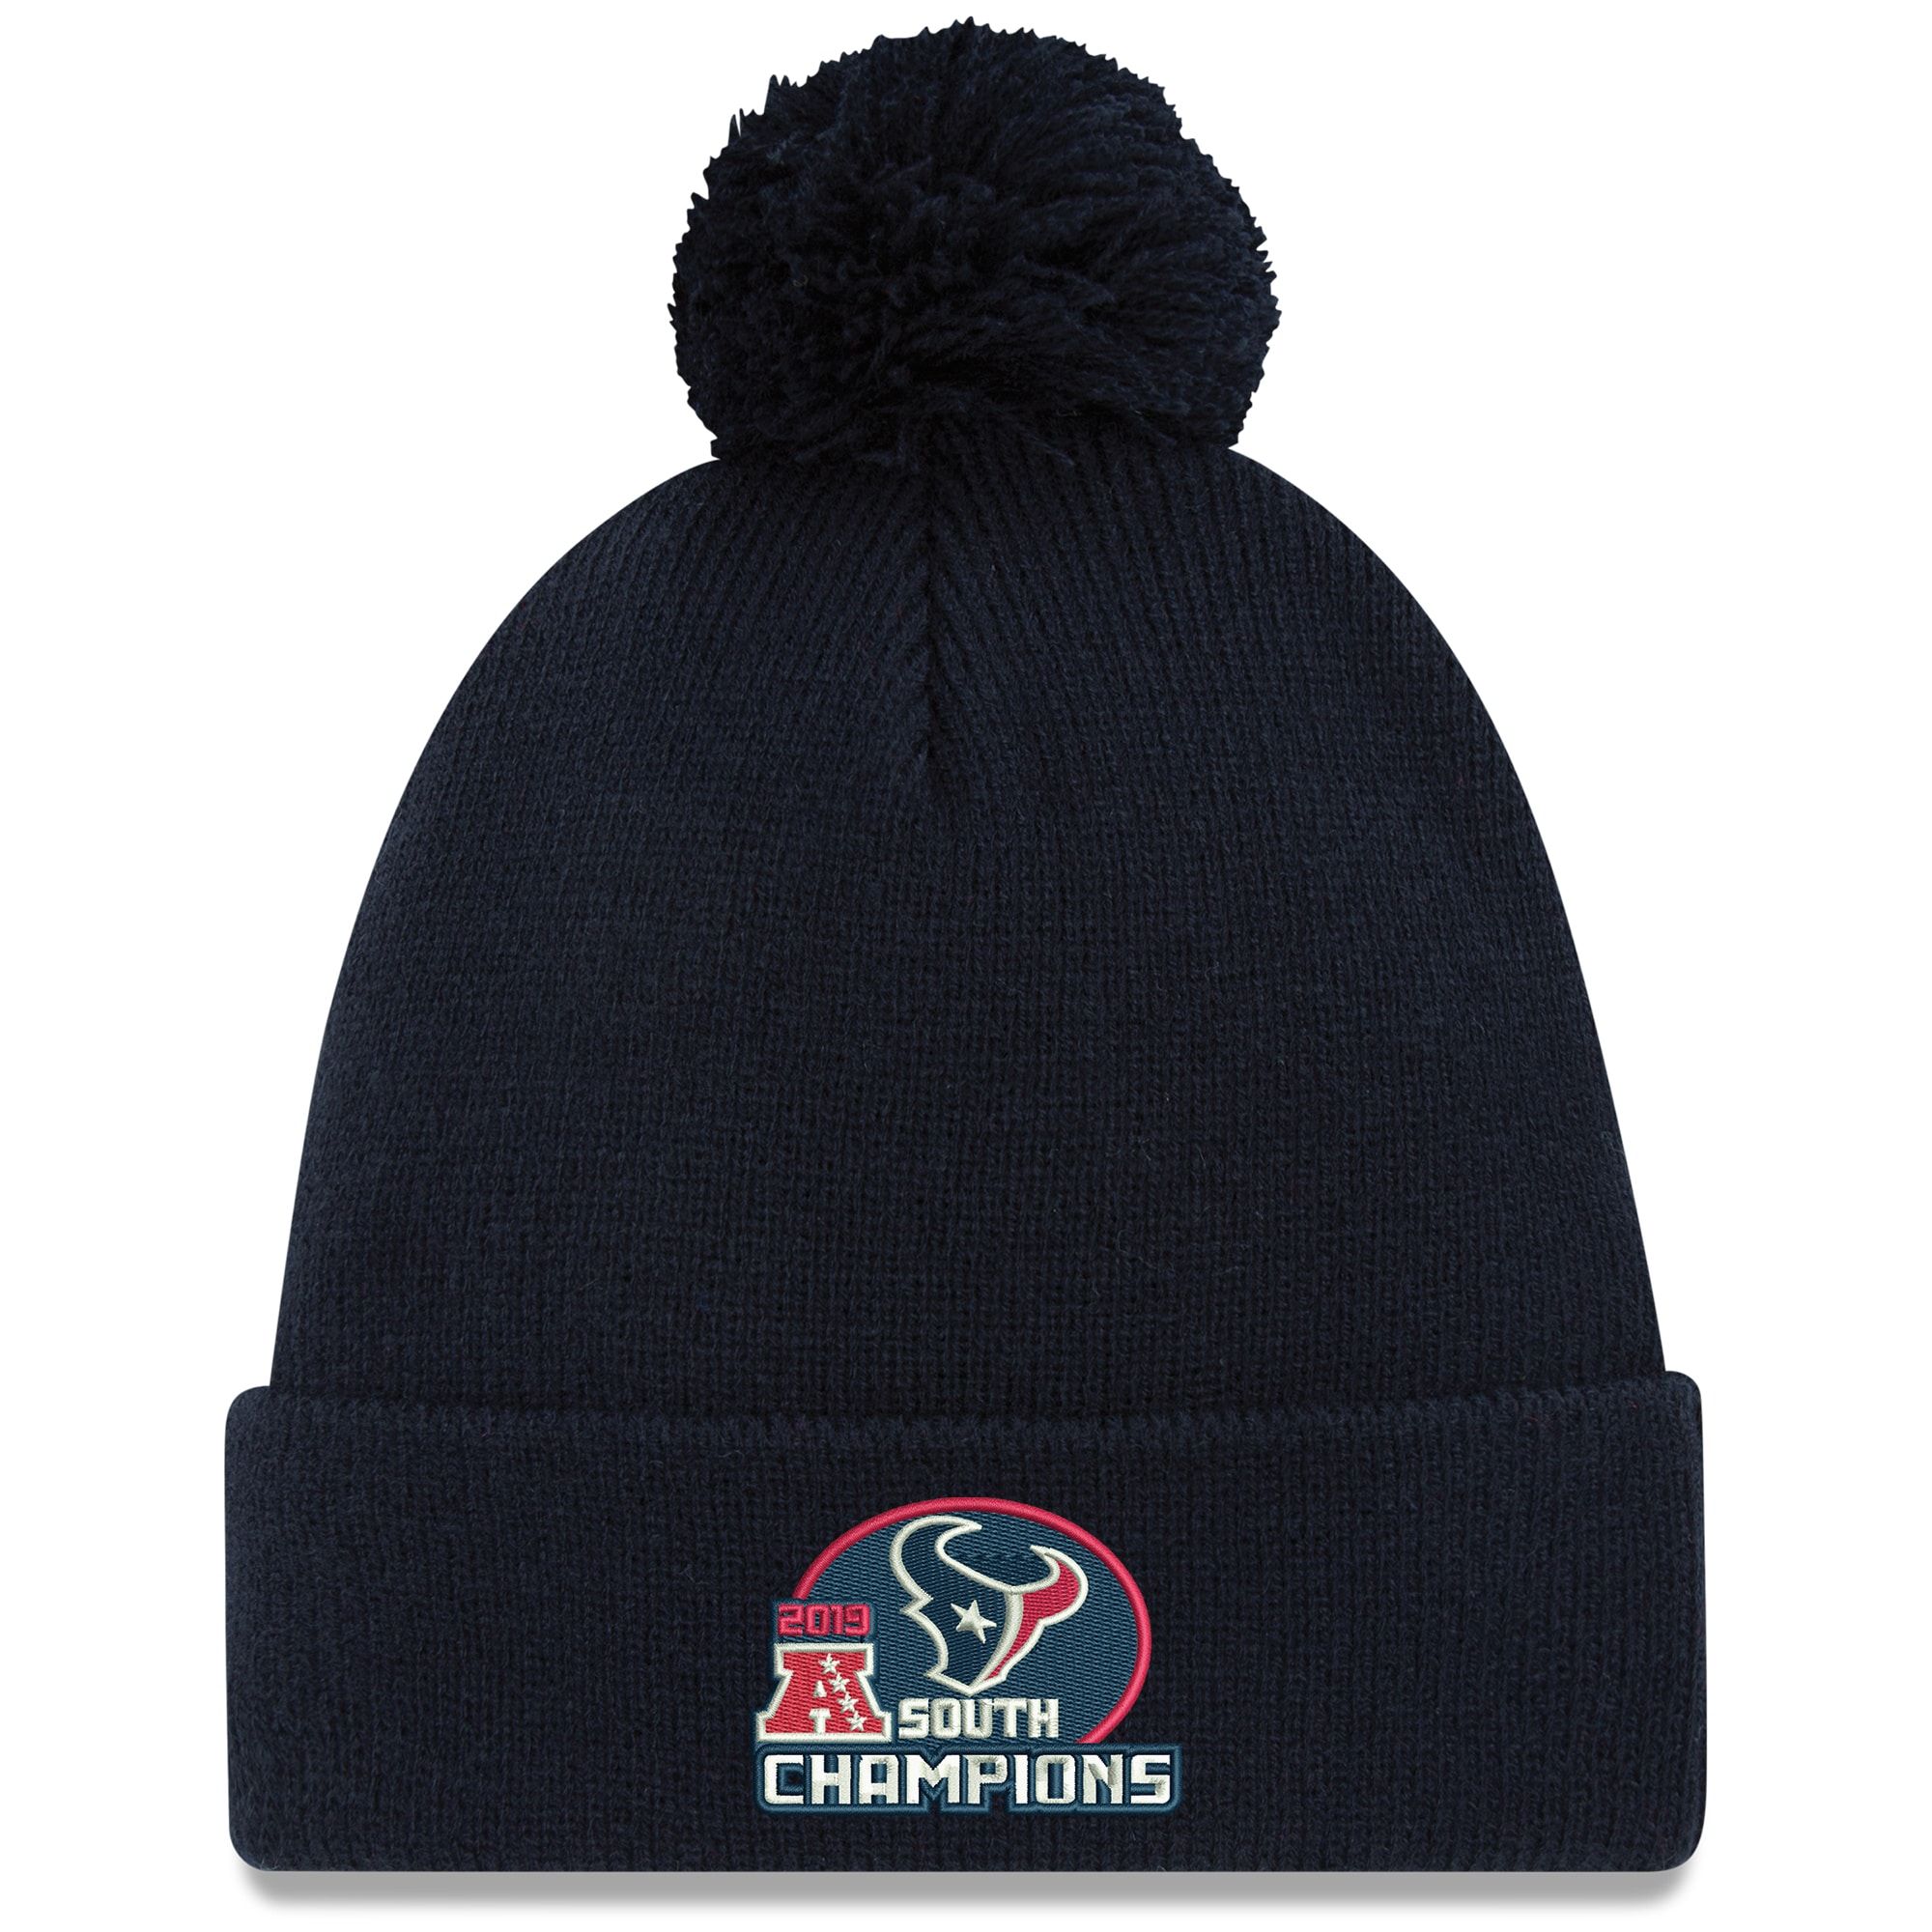 Houston Texans New Era 2019 AFC South Division Champions Cuffed Pom Knit Hat - Navy